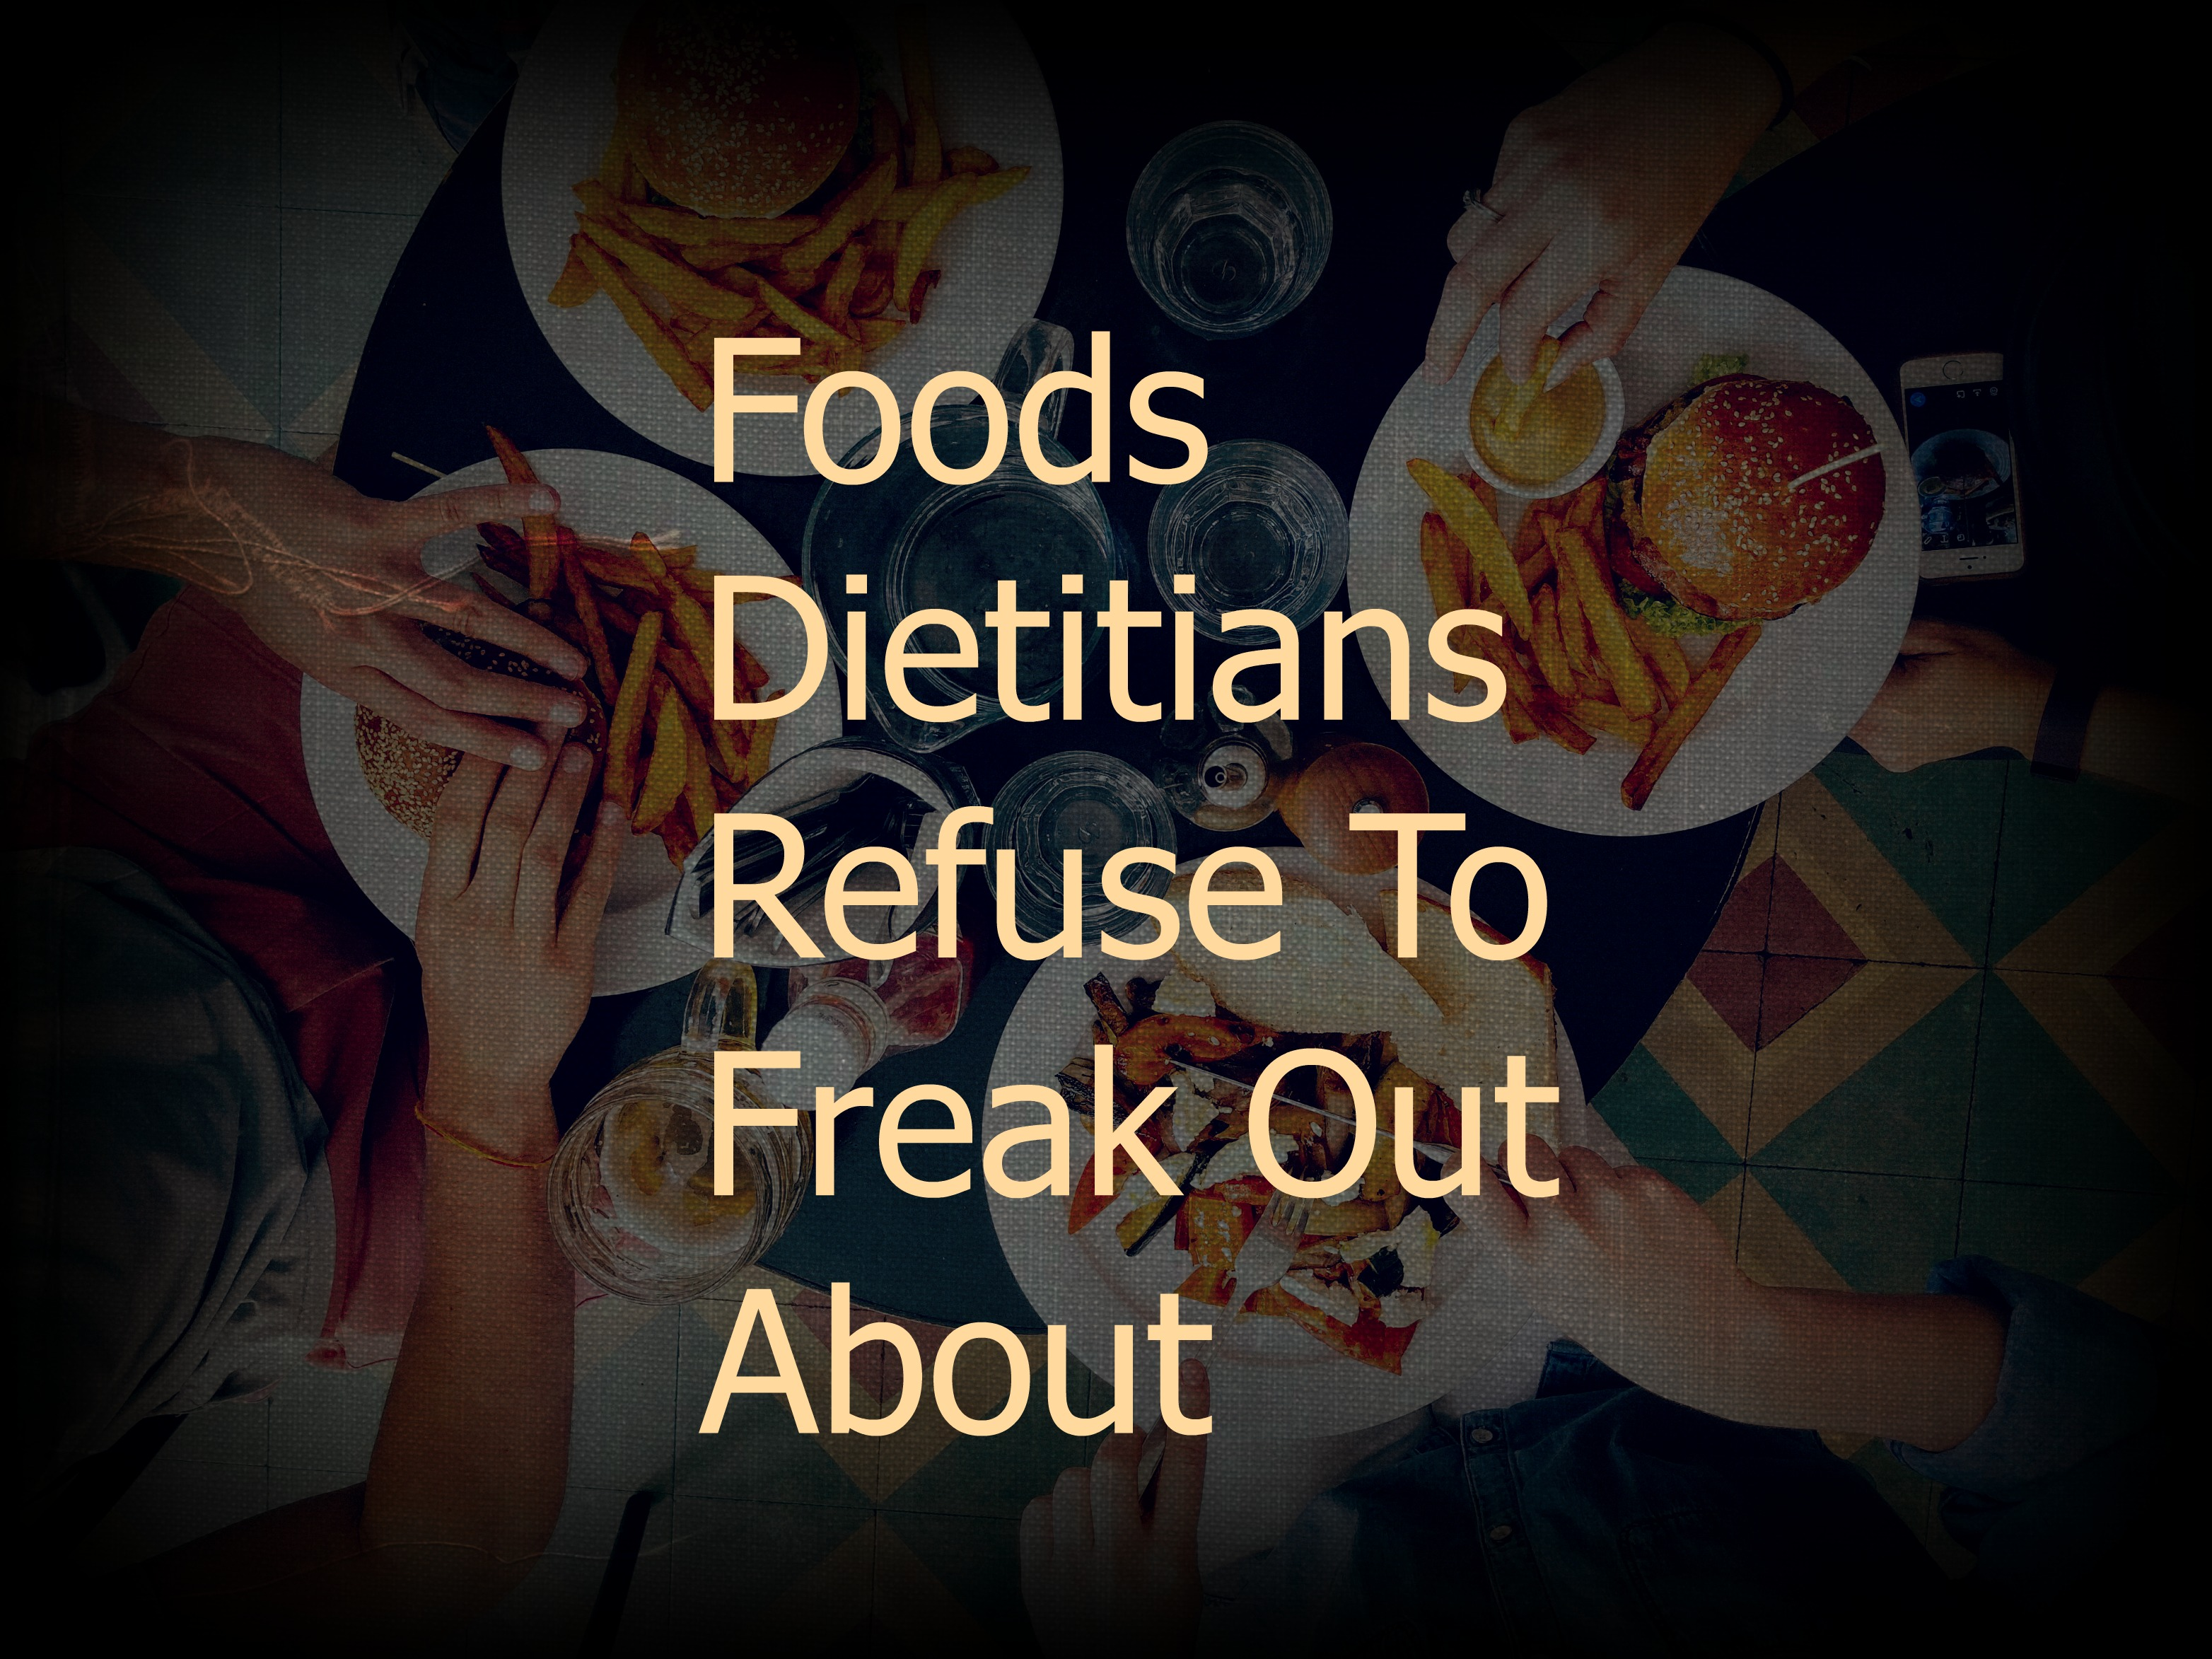 Foods Dietitians Refuse to Freak Out About